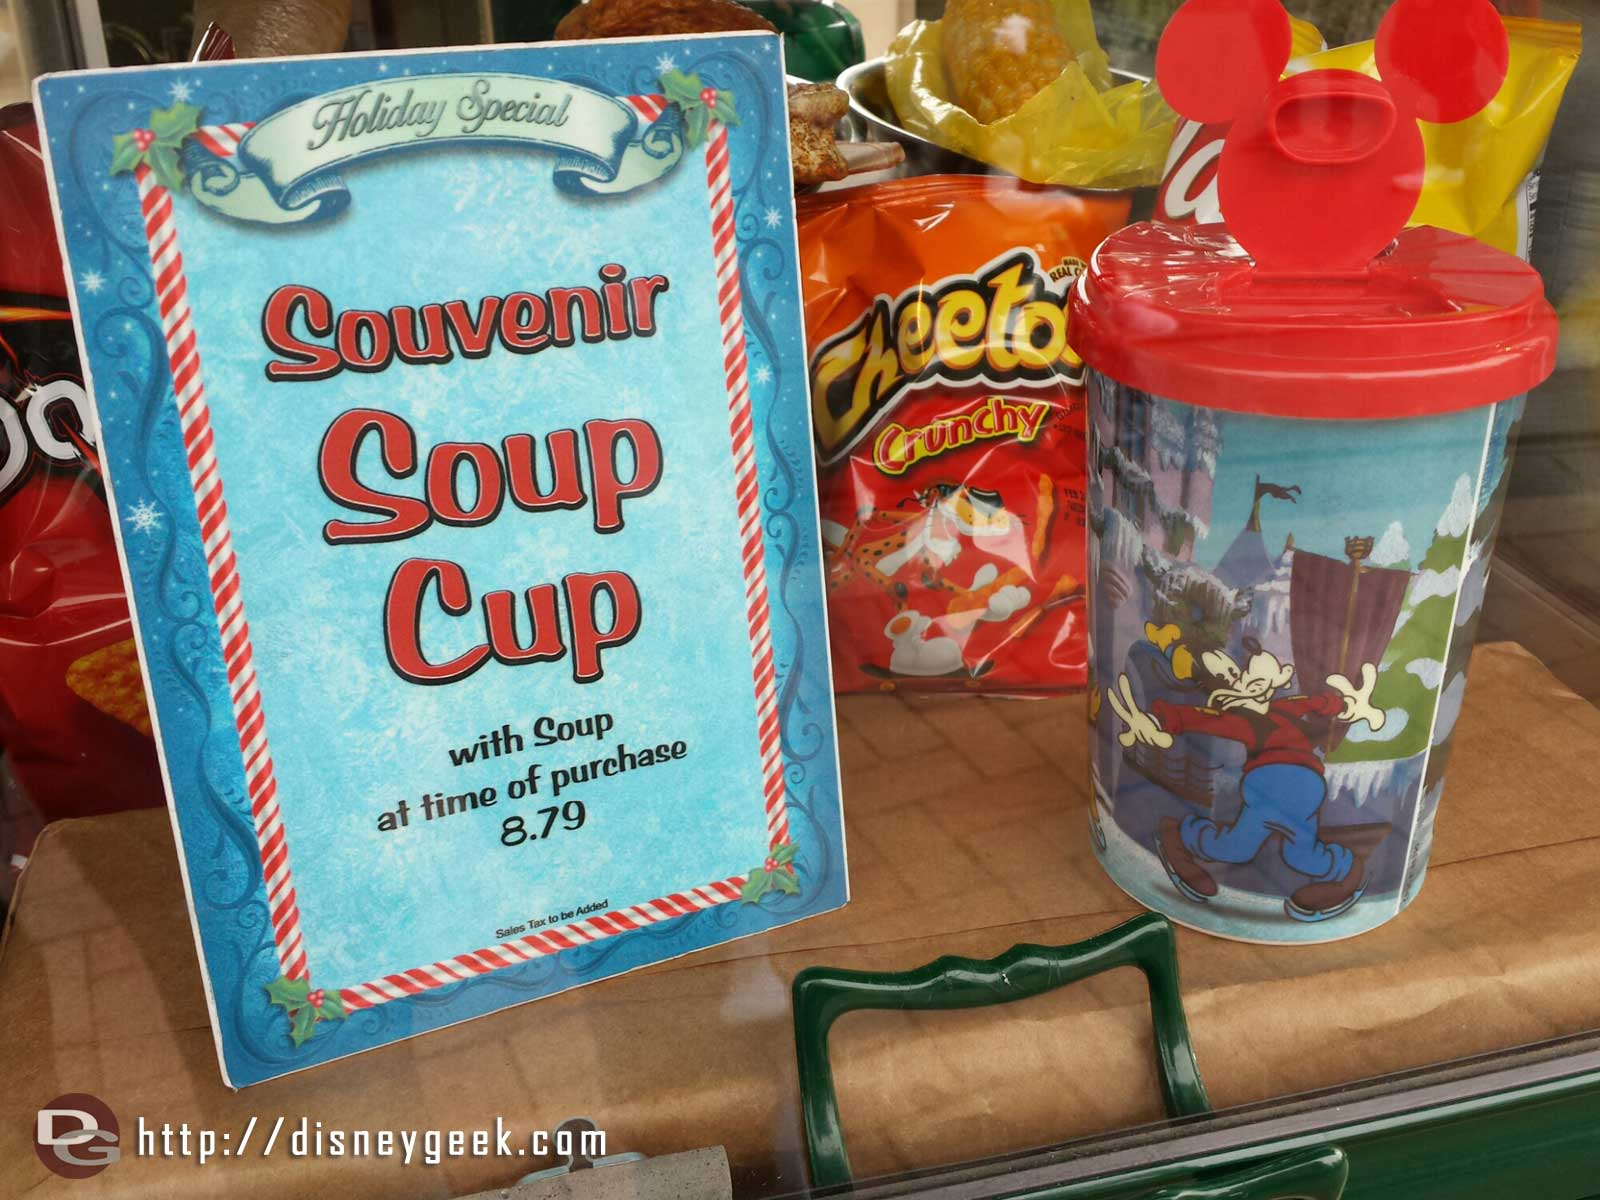 Holiday special souvenir soup cup at the outdoor stand in the hub #Disneyland